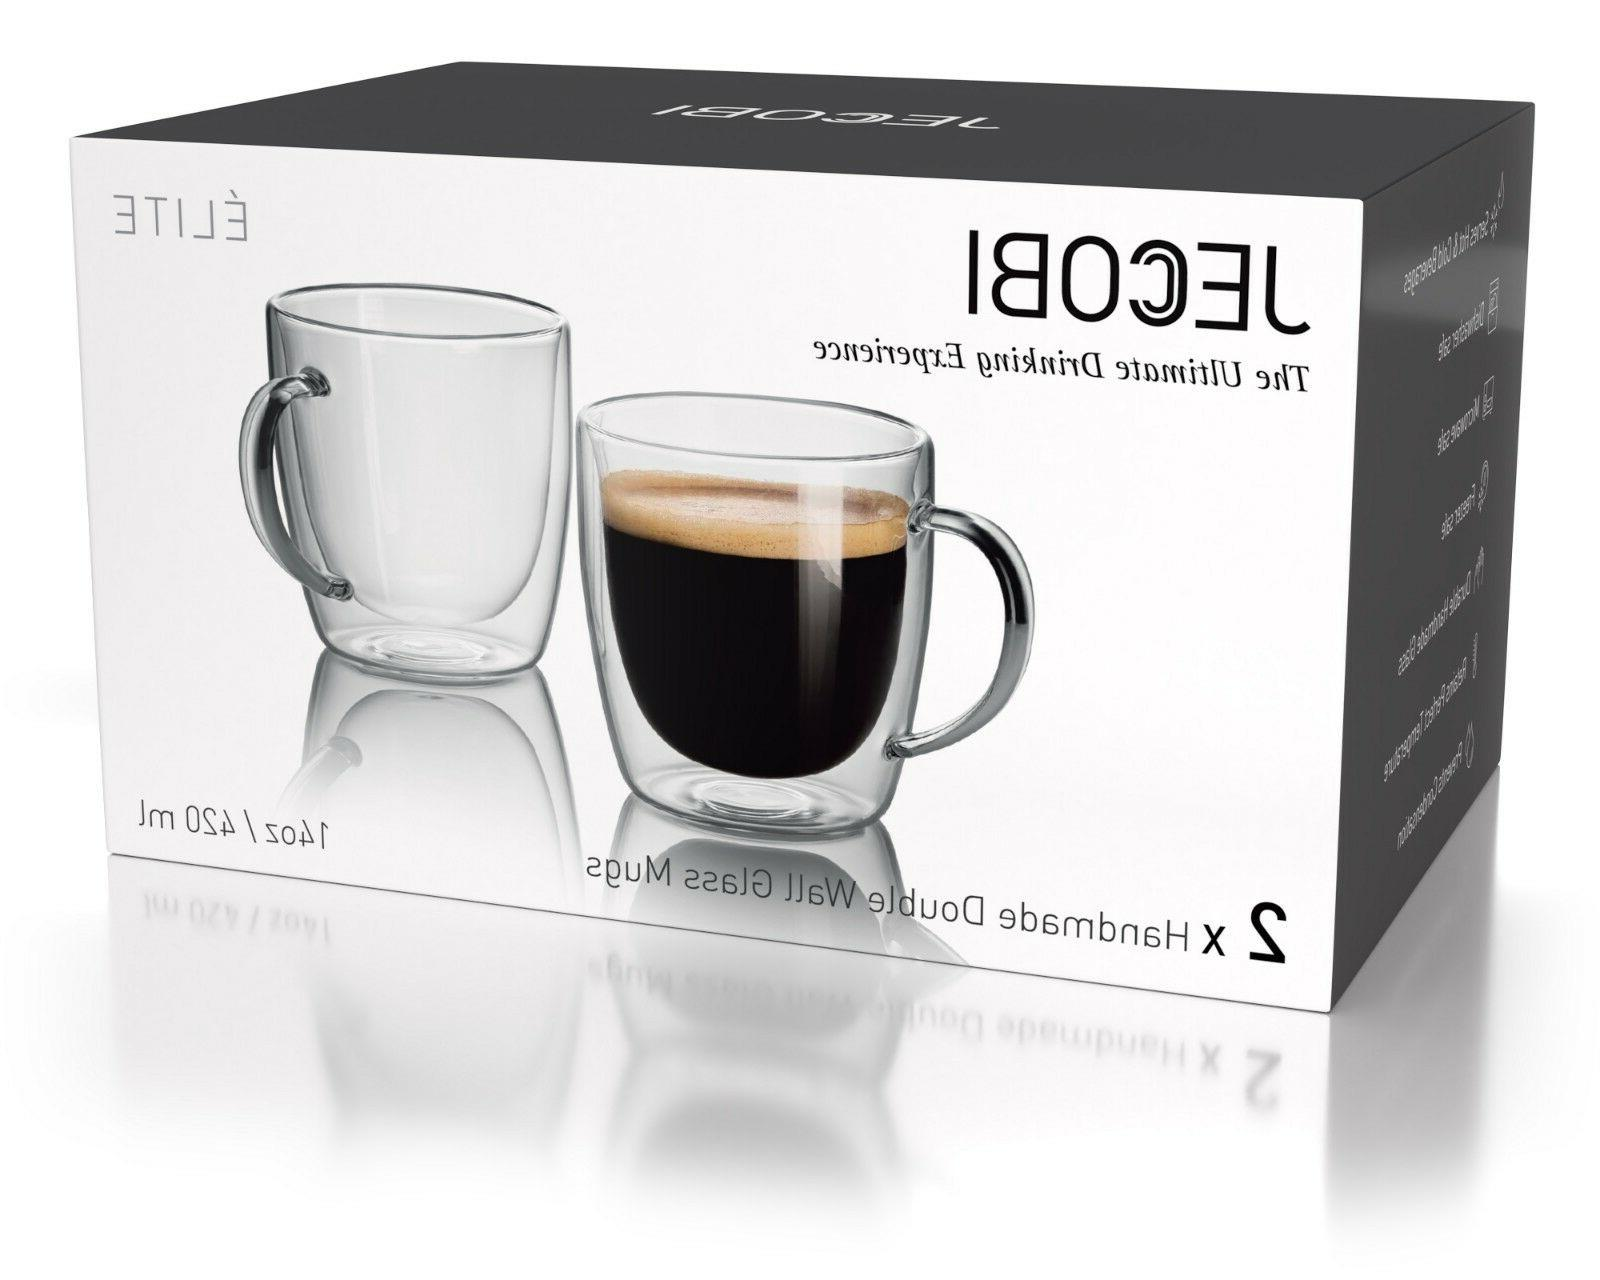 JECOBI Double Wall Mug Tea Mug Espresso 14 oz